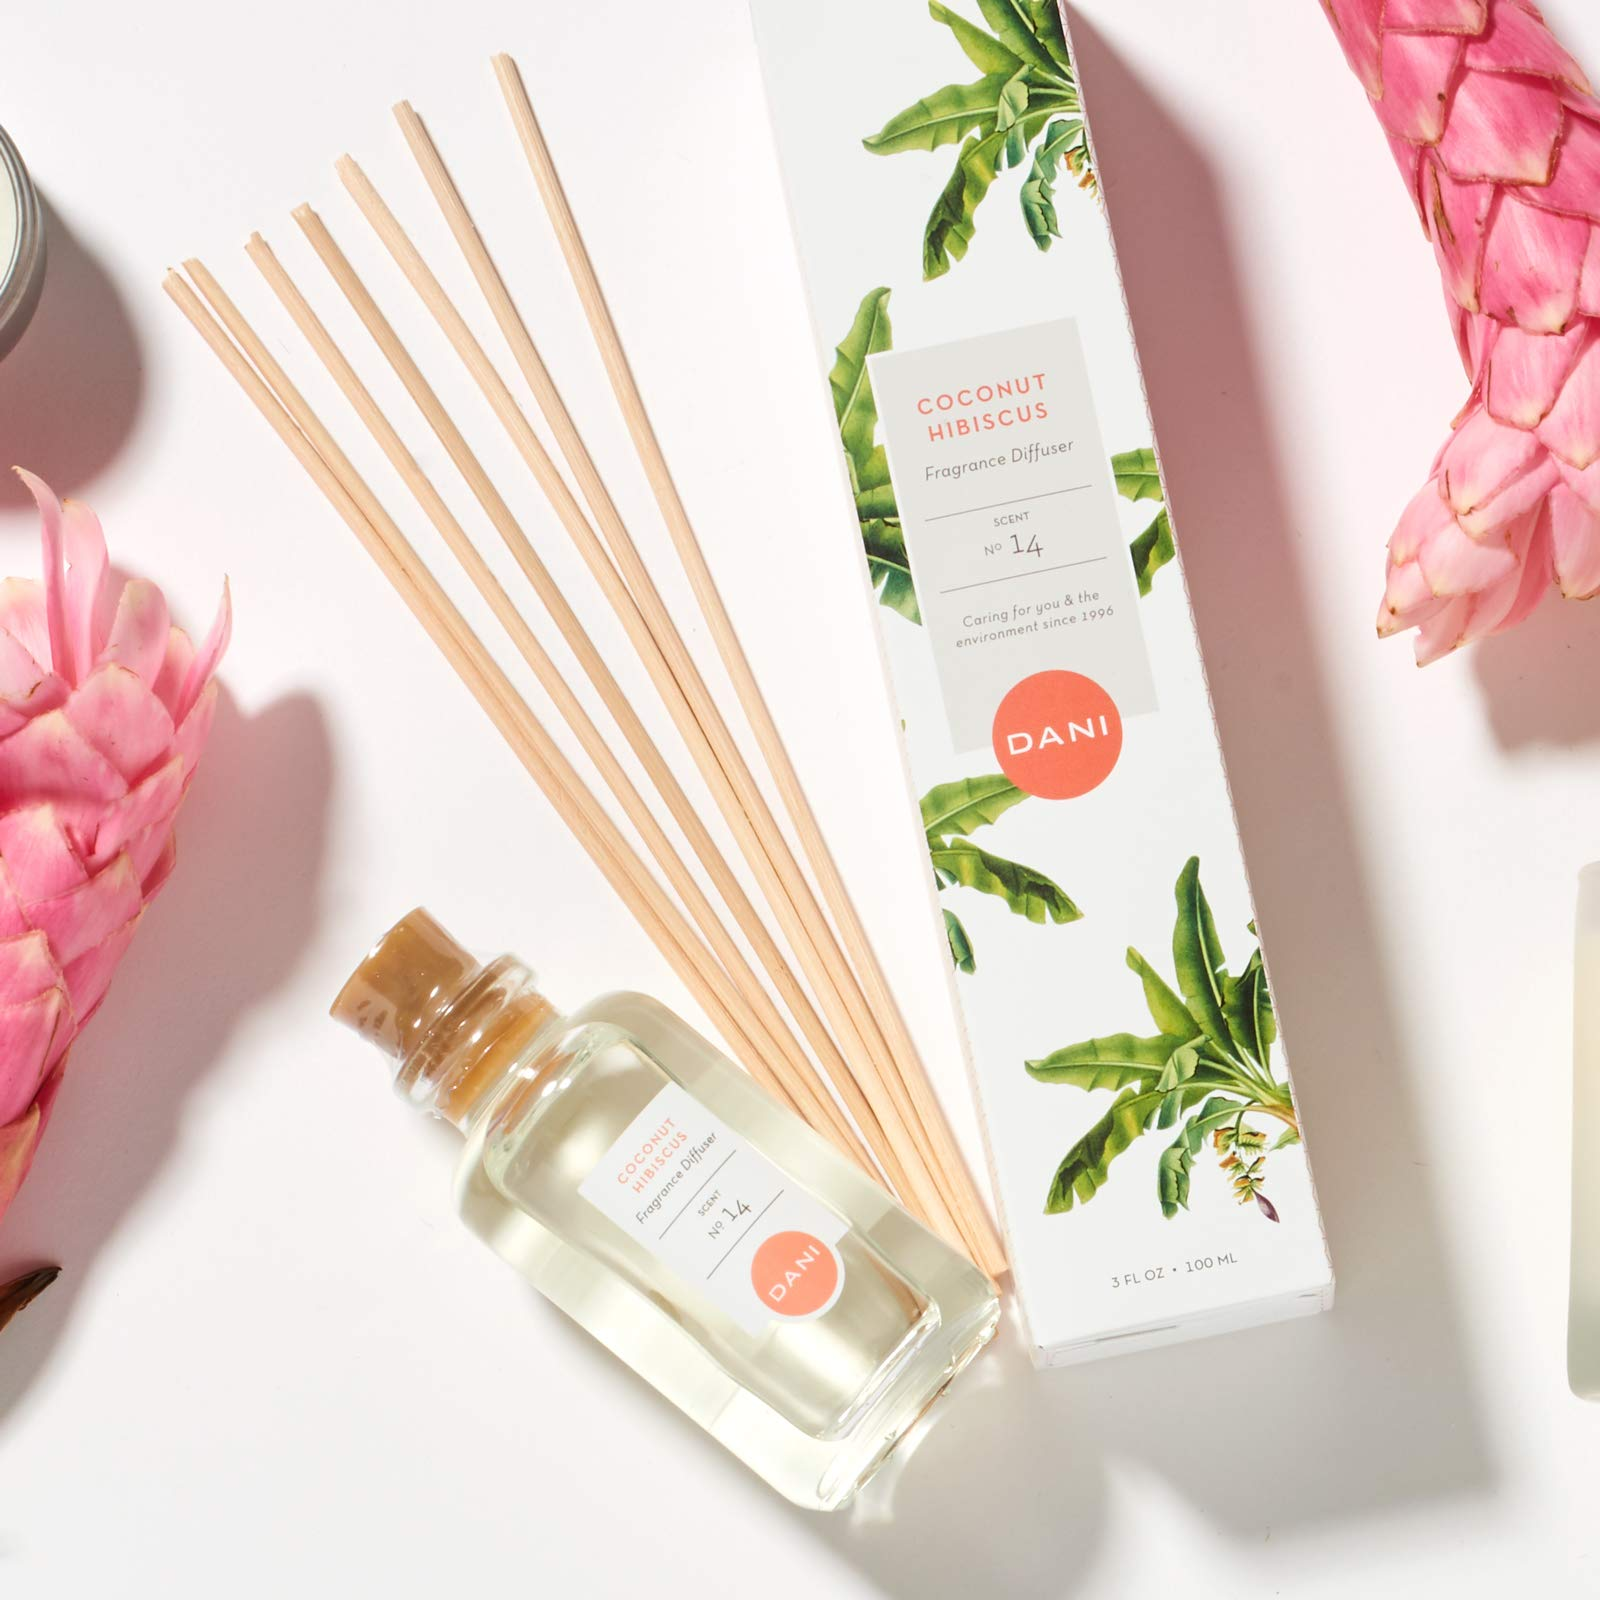 Natural Reed Diffuser Set by DANI Naturals - Tropical Coconut Hibiscus Scent - Aromatherapy Essential Oils - Alcohol Free - 10 Diffuser Sticks - 3.5 Ounce Glass Bottle by DANI (Image #5)